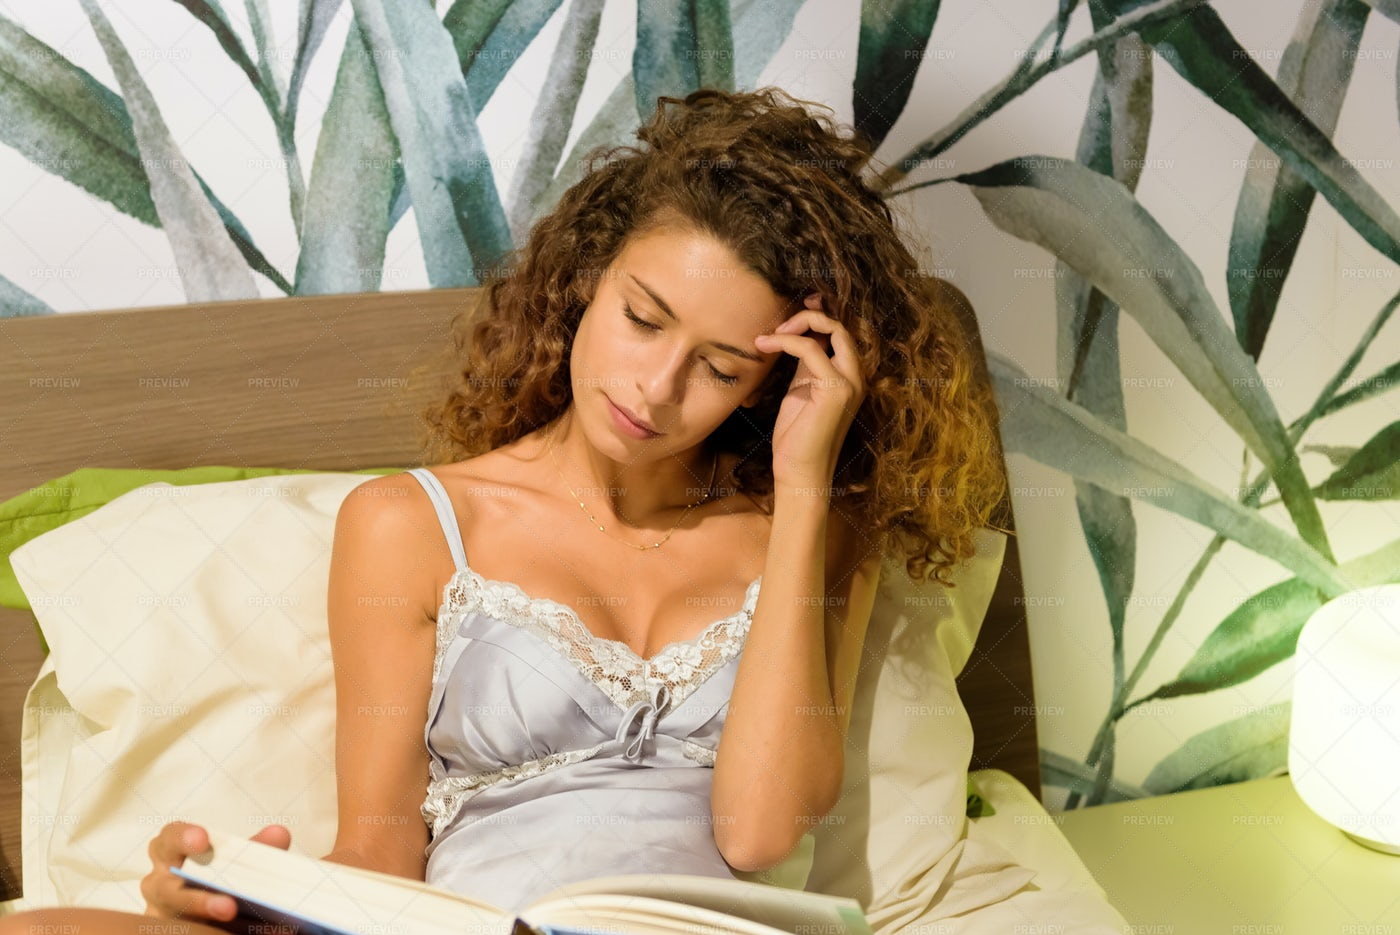 Woman Relaxing On Her Bed: Stock Photos